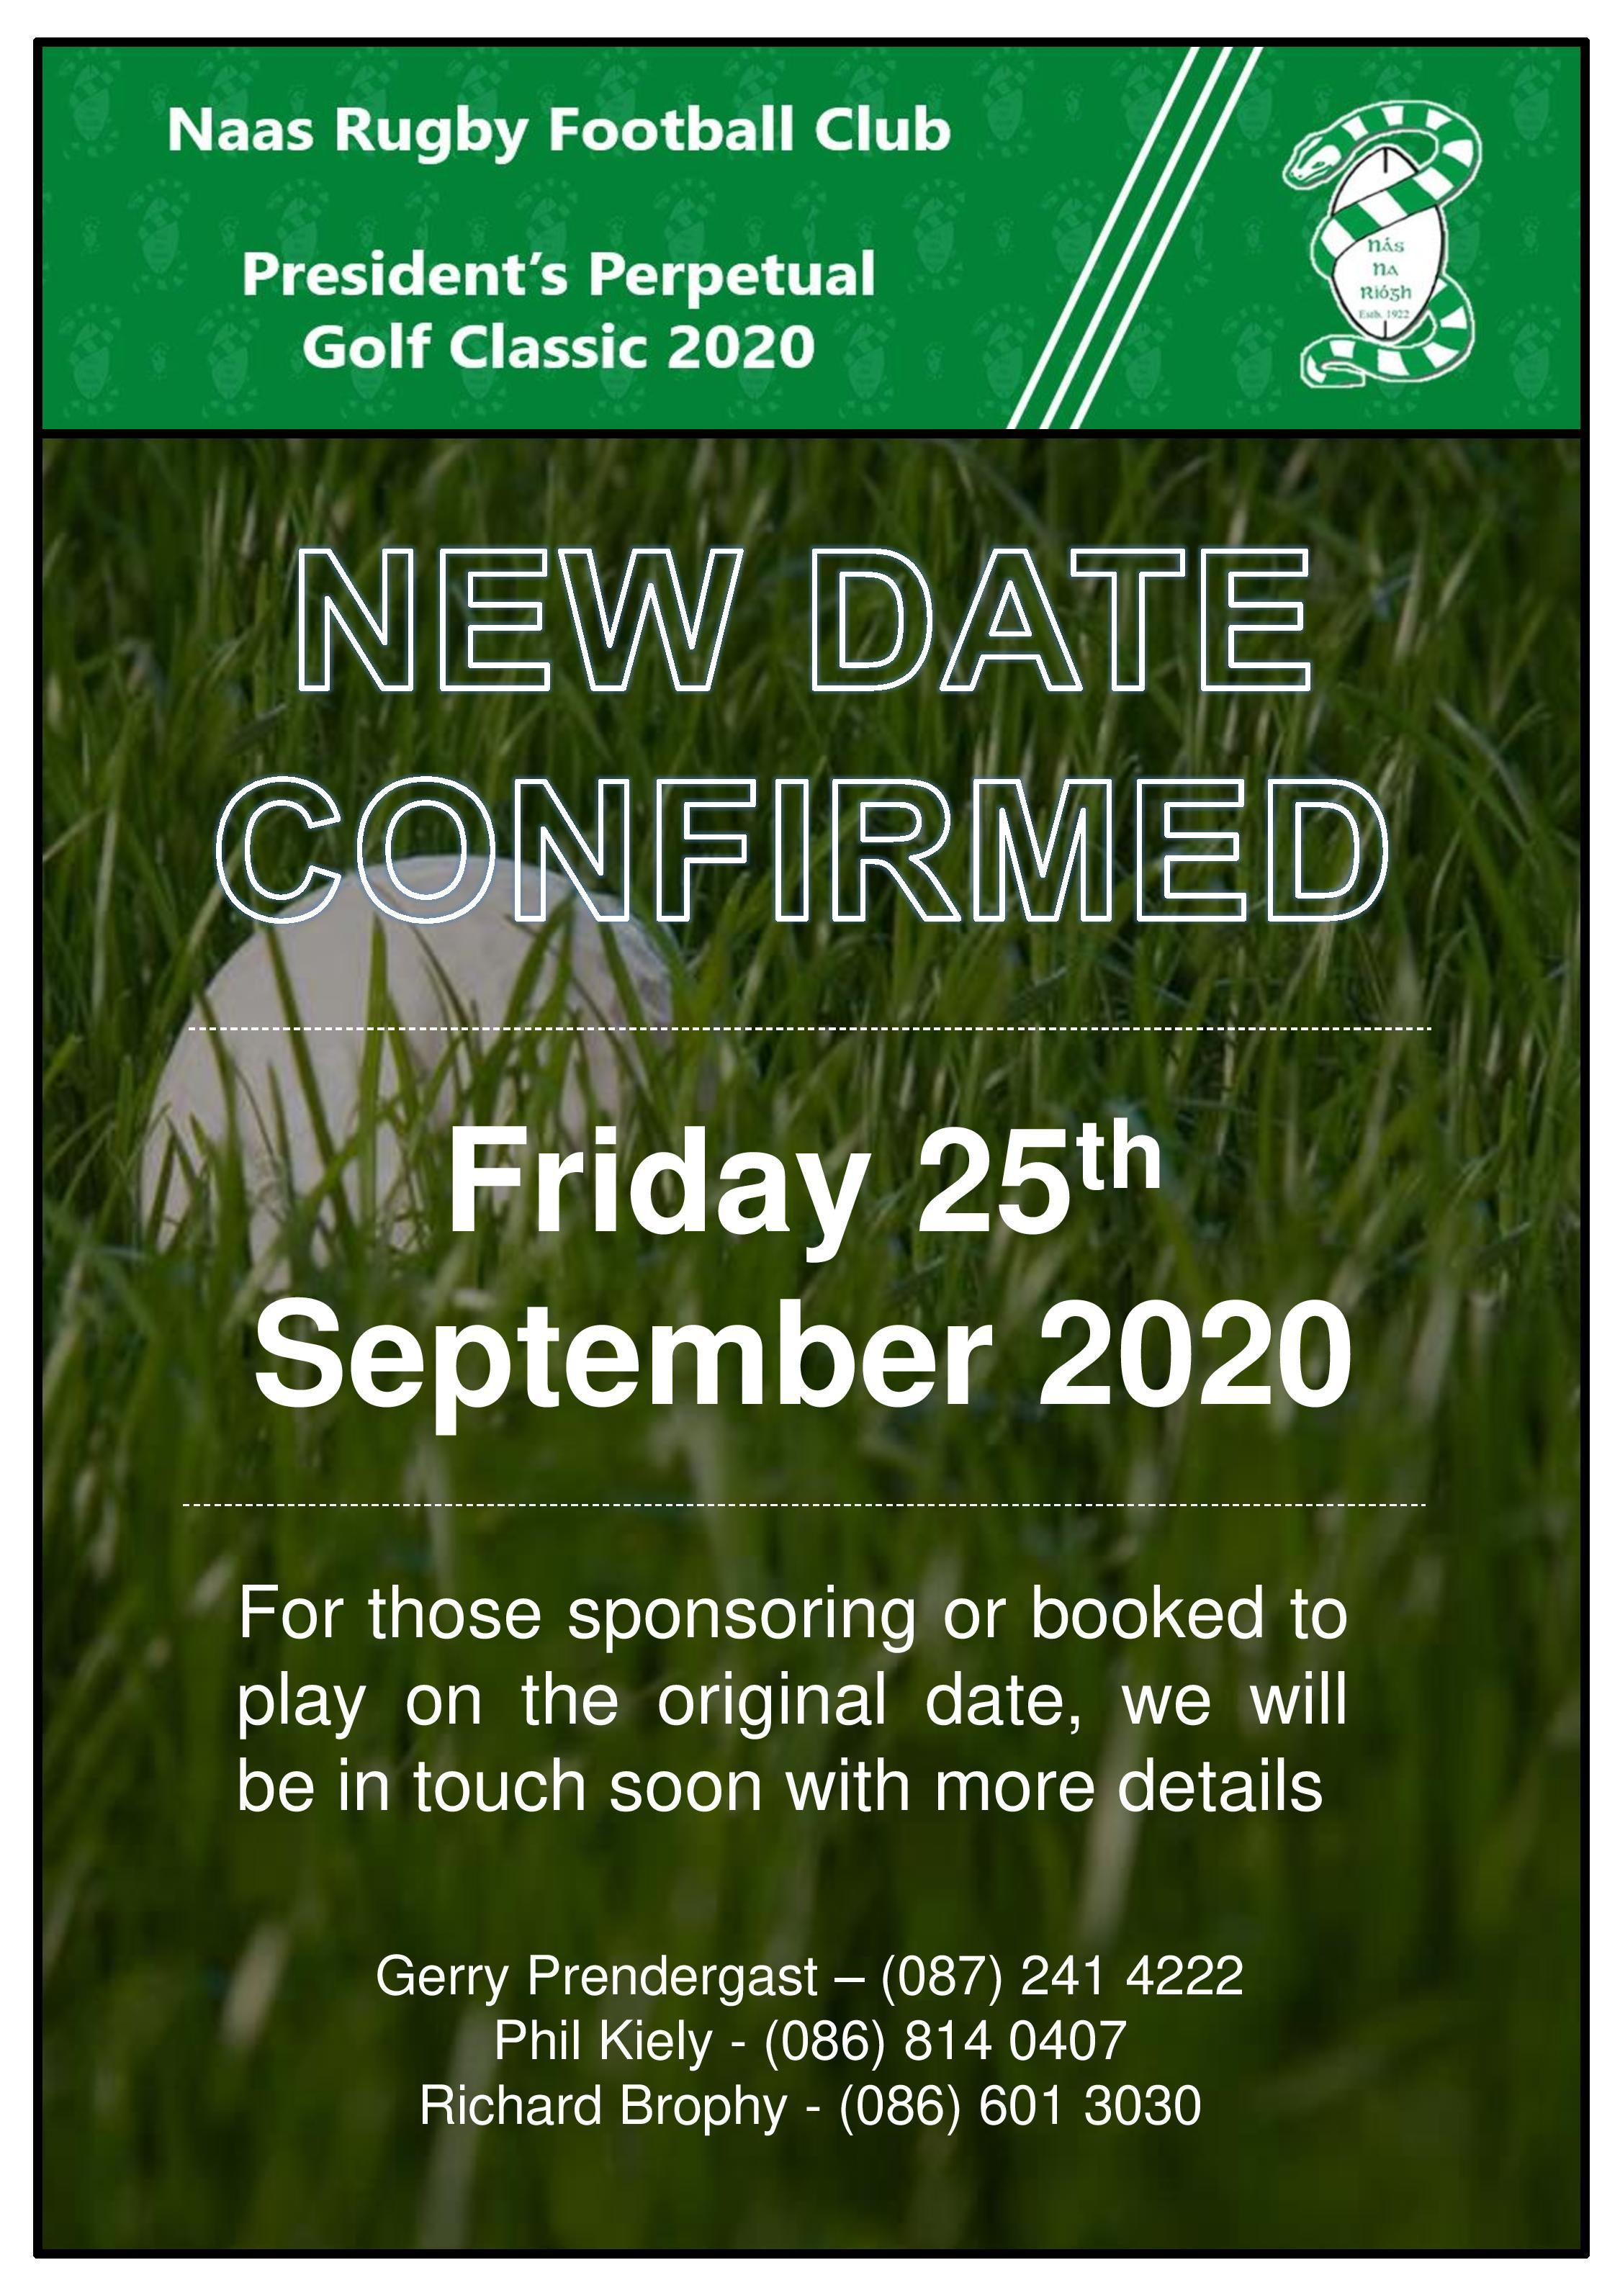 Naas 20rfc 20golf 20classic 20revised 20date 202020